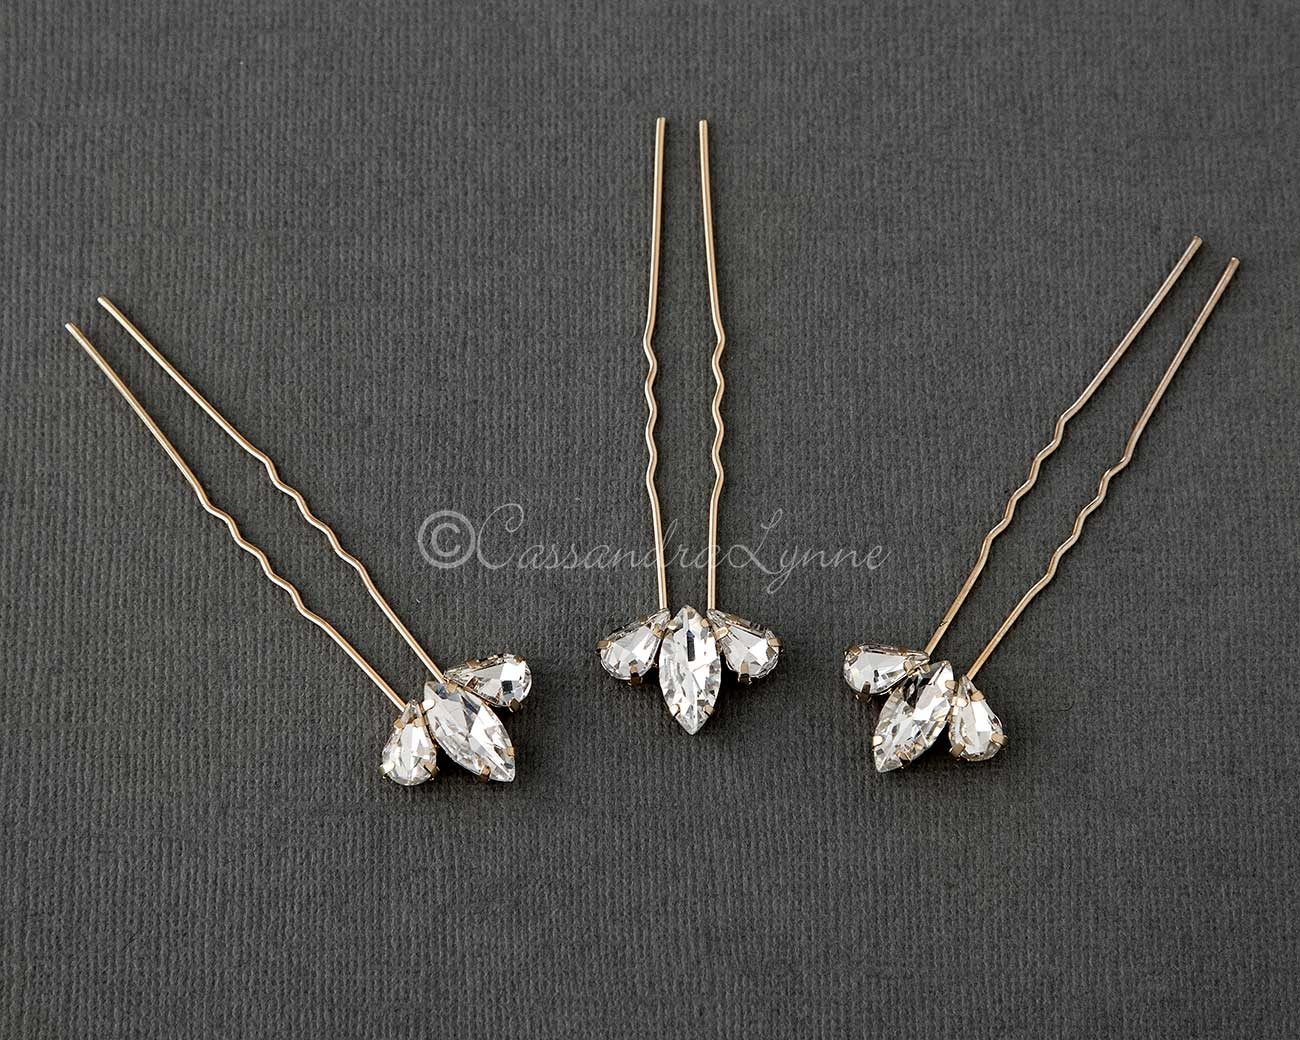 Bridal Hair Pin Set in Gold